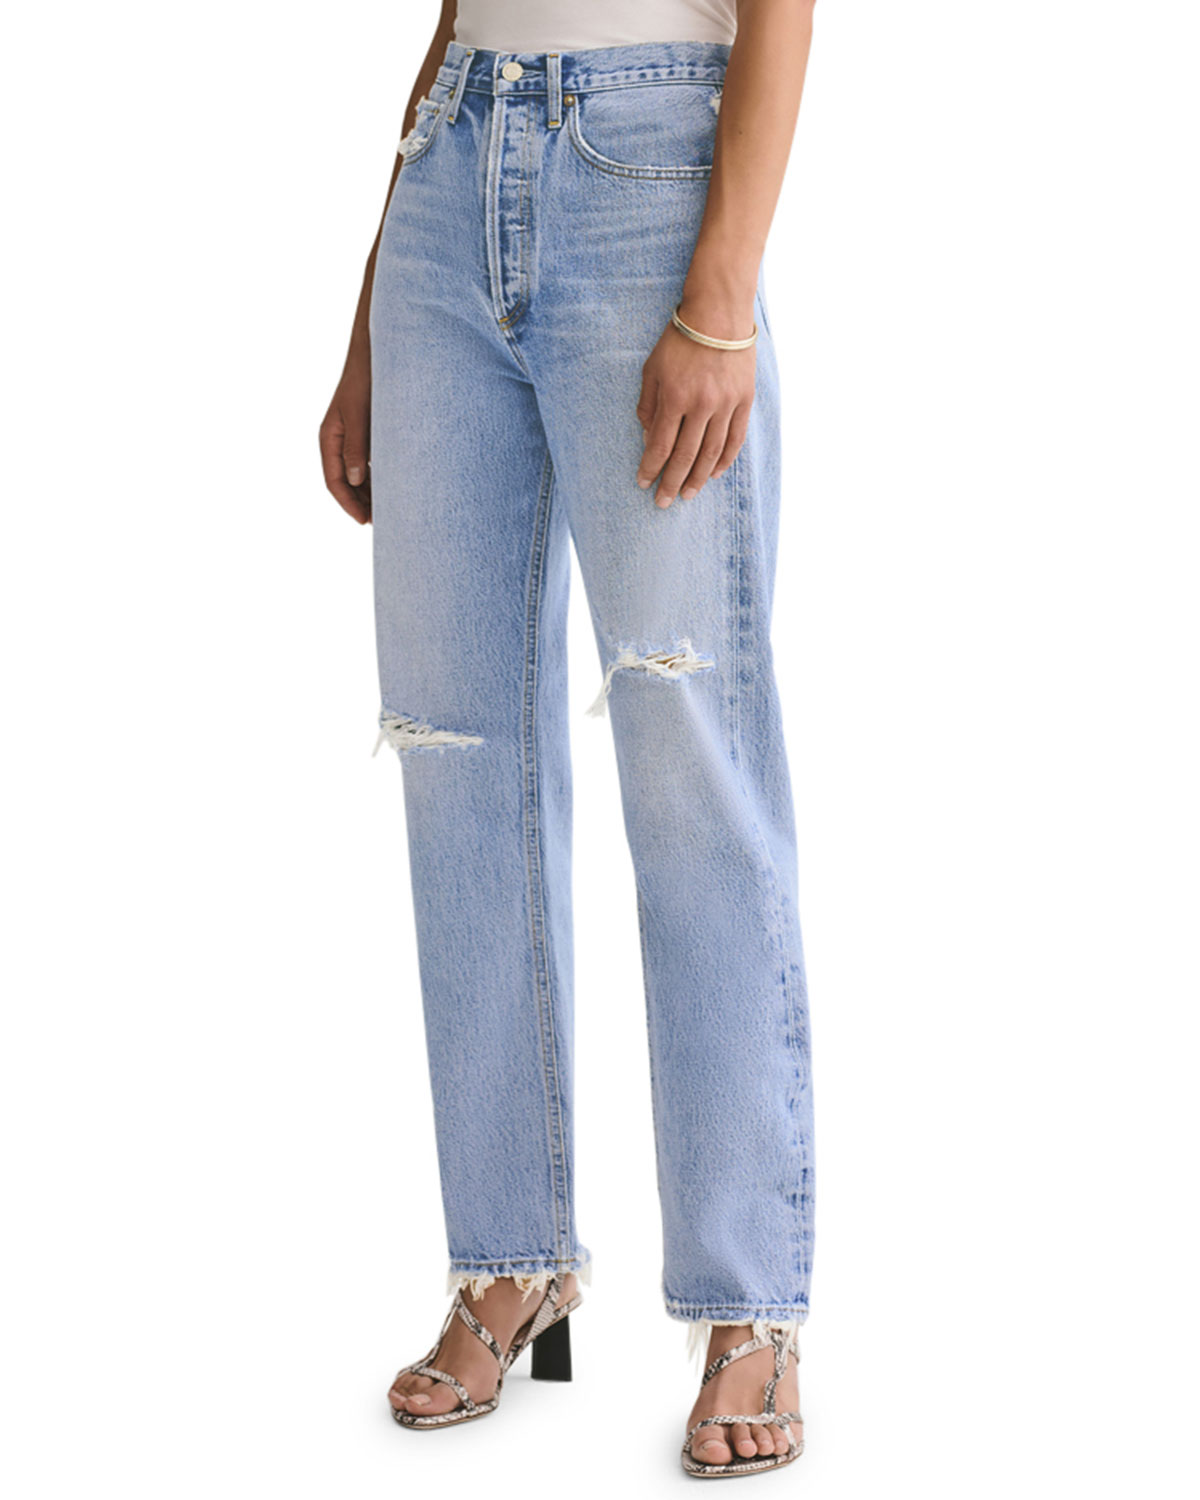 Agolde Denims 90S DISTRESSED BOYFRIEND JEANS